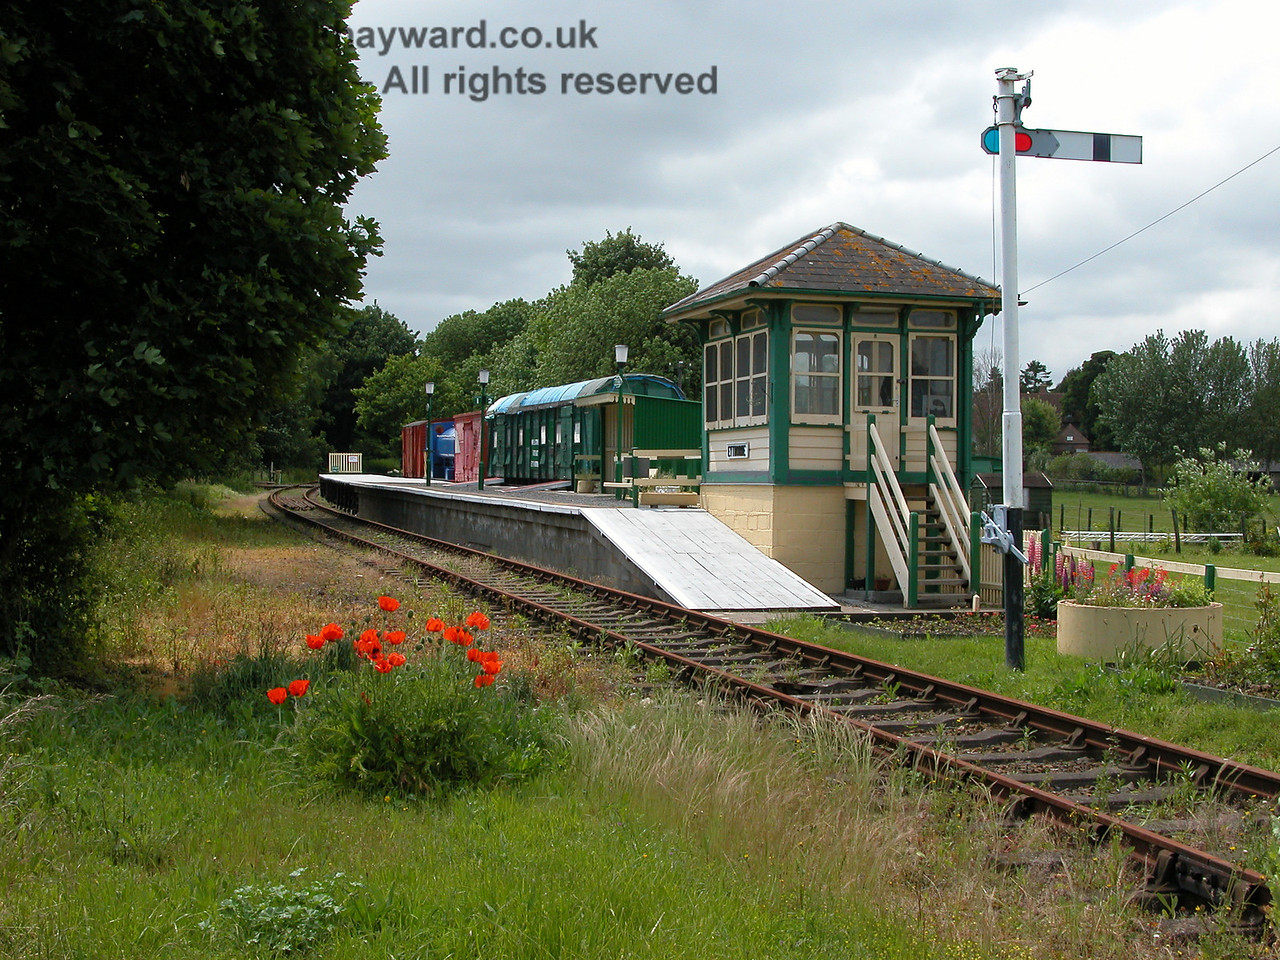 Taken 10 years previously, Eythorne Station looking west on 06.06.2005